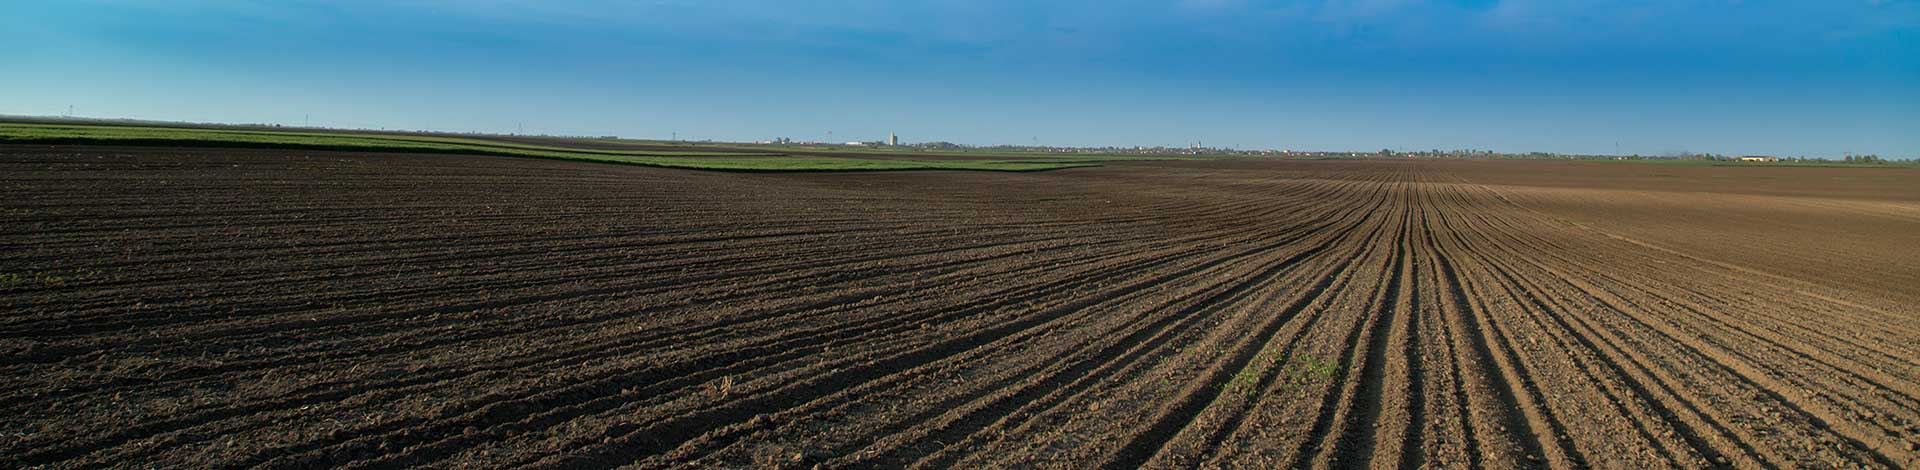 Tilled farm field